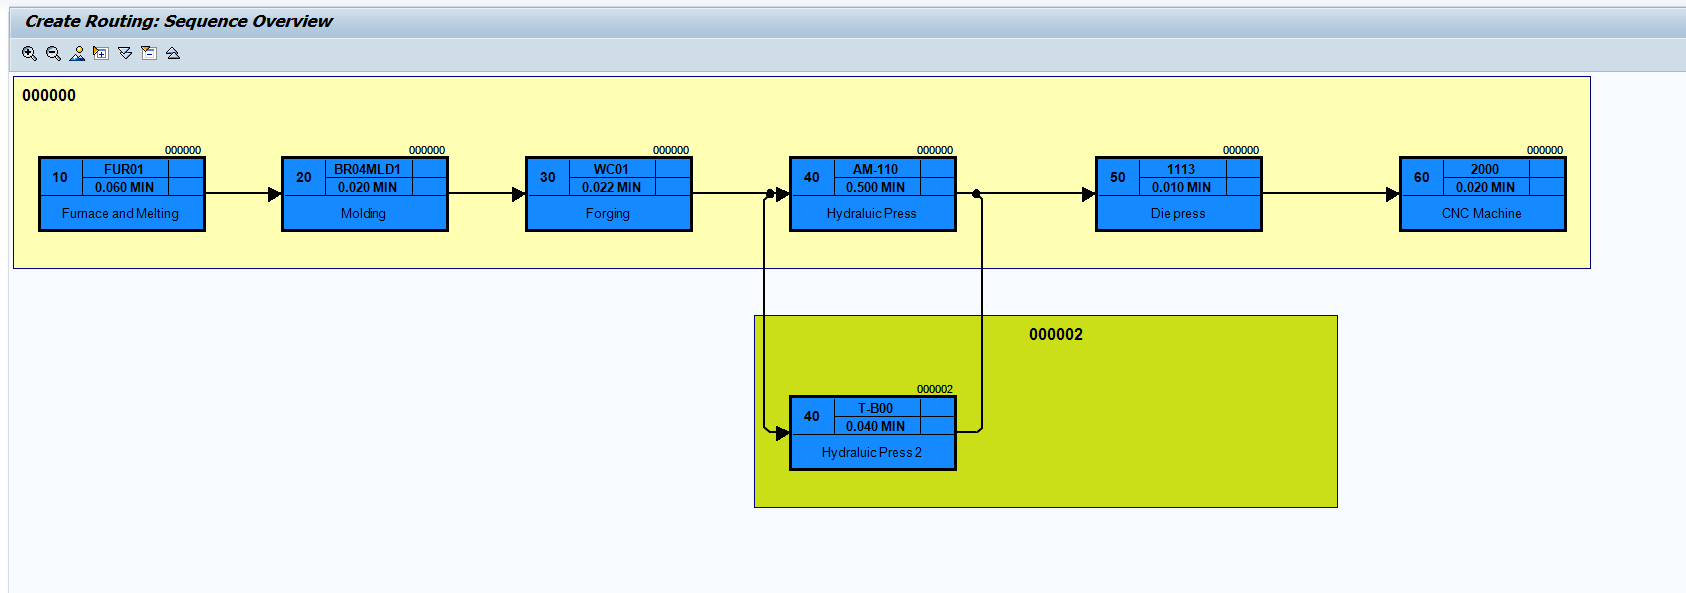 Sequence Overview - Graphical Display (2)